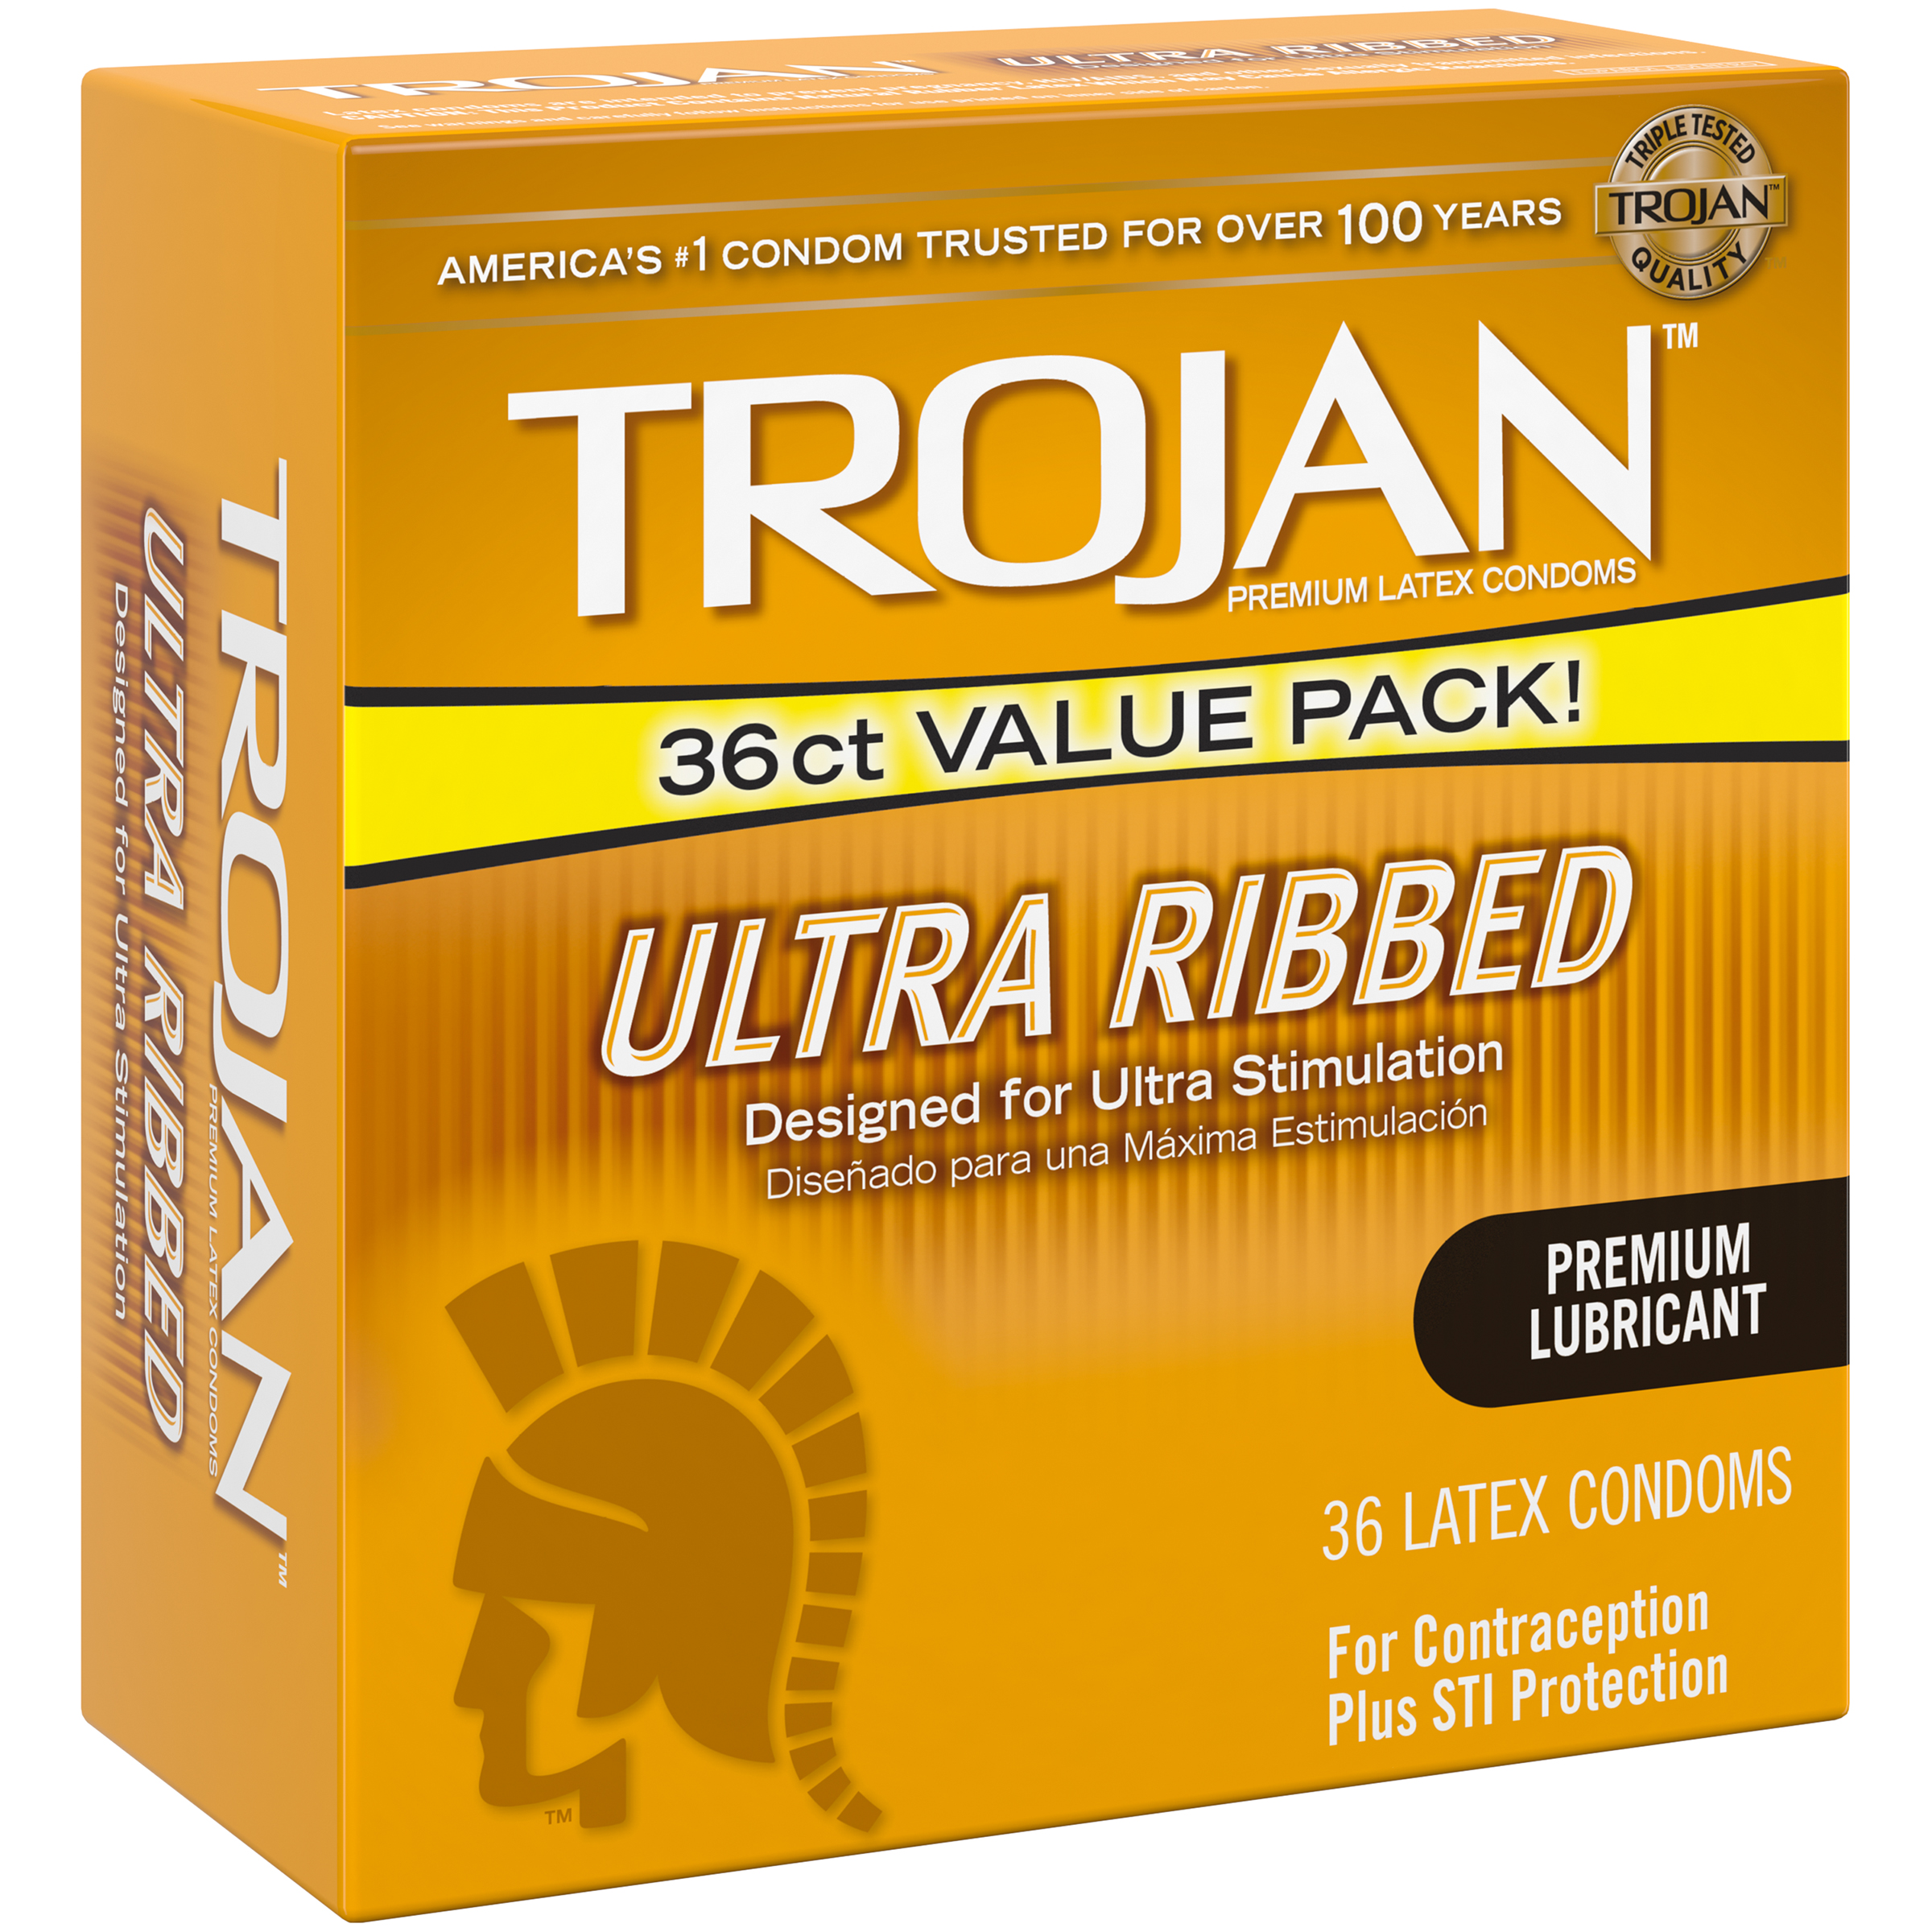 Trojan Ultra Ribbed Premium Lubricant Condoms Value Pack, 36 count